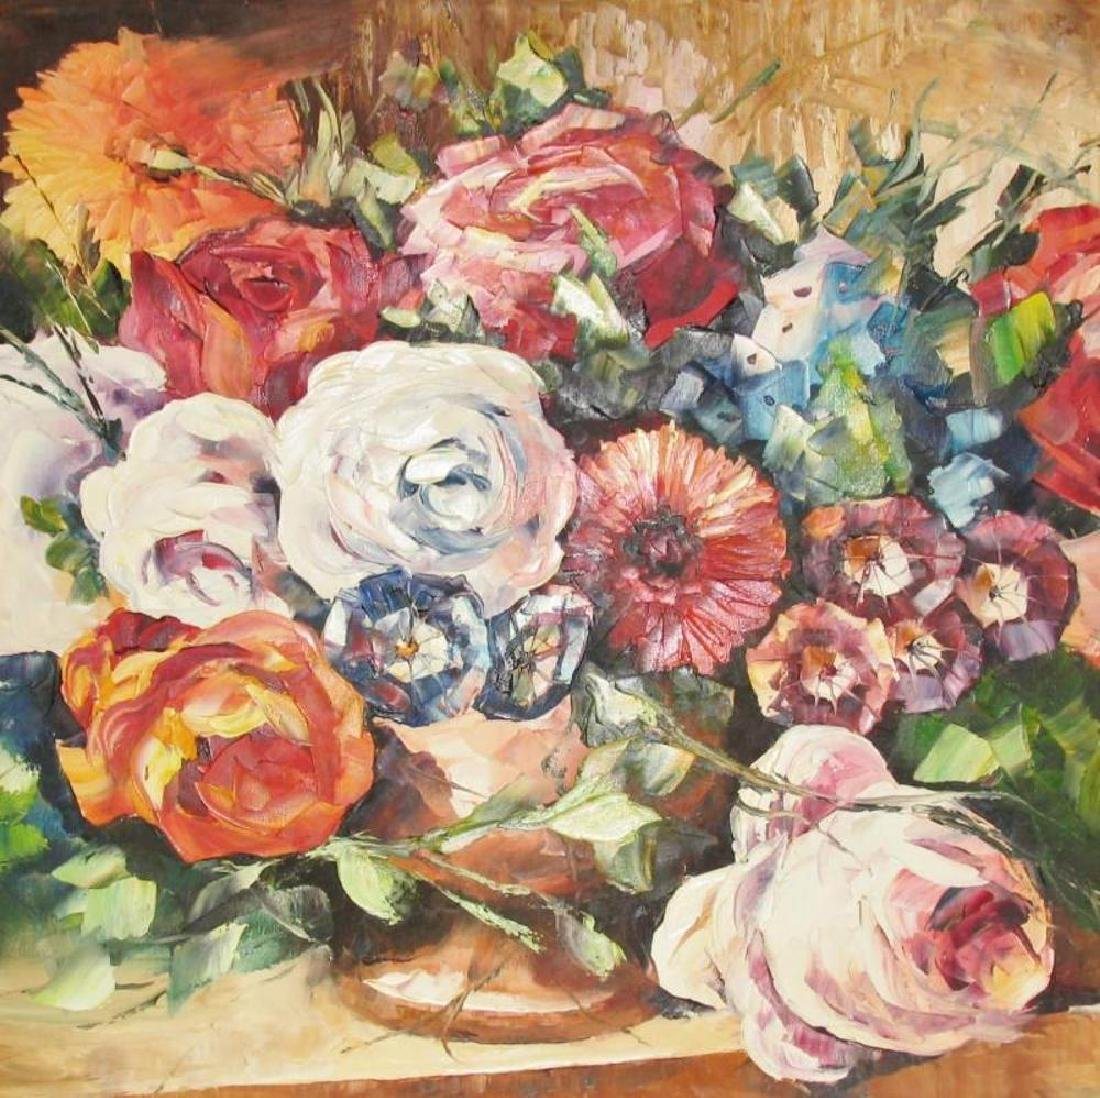 Textured Floral On Canvas Original Signed Painting - 3